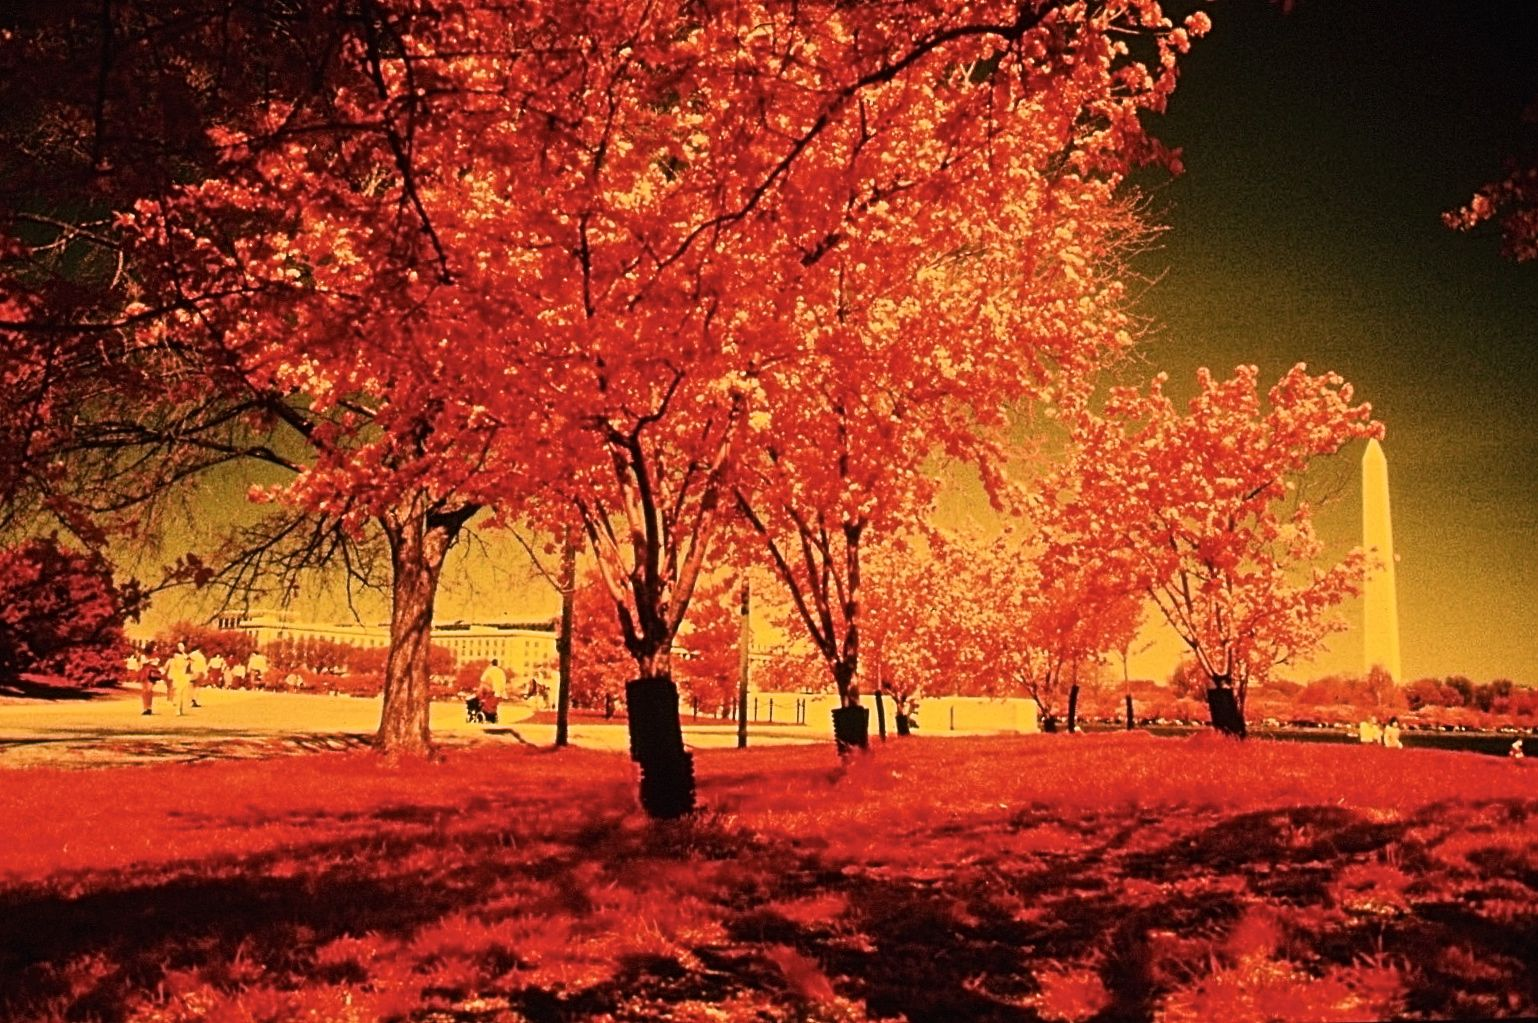 washington dc cherry blossoms color infrared film 2001 5